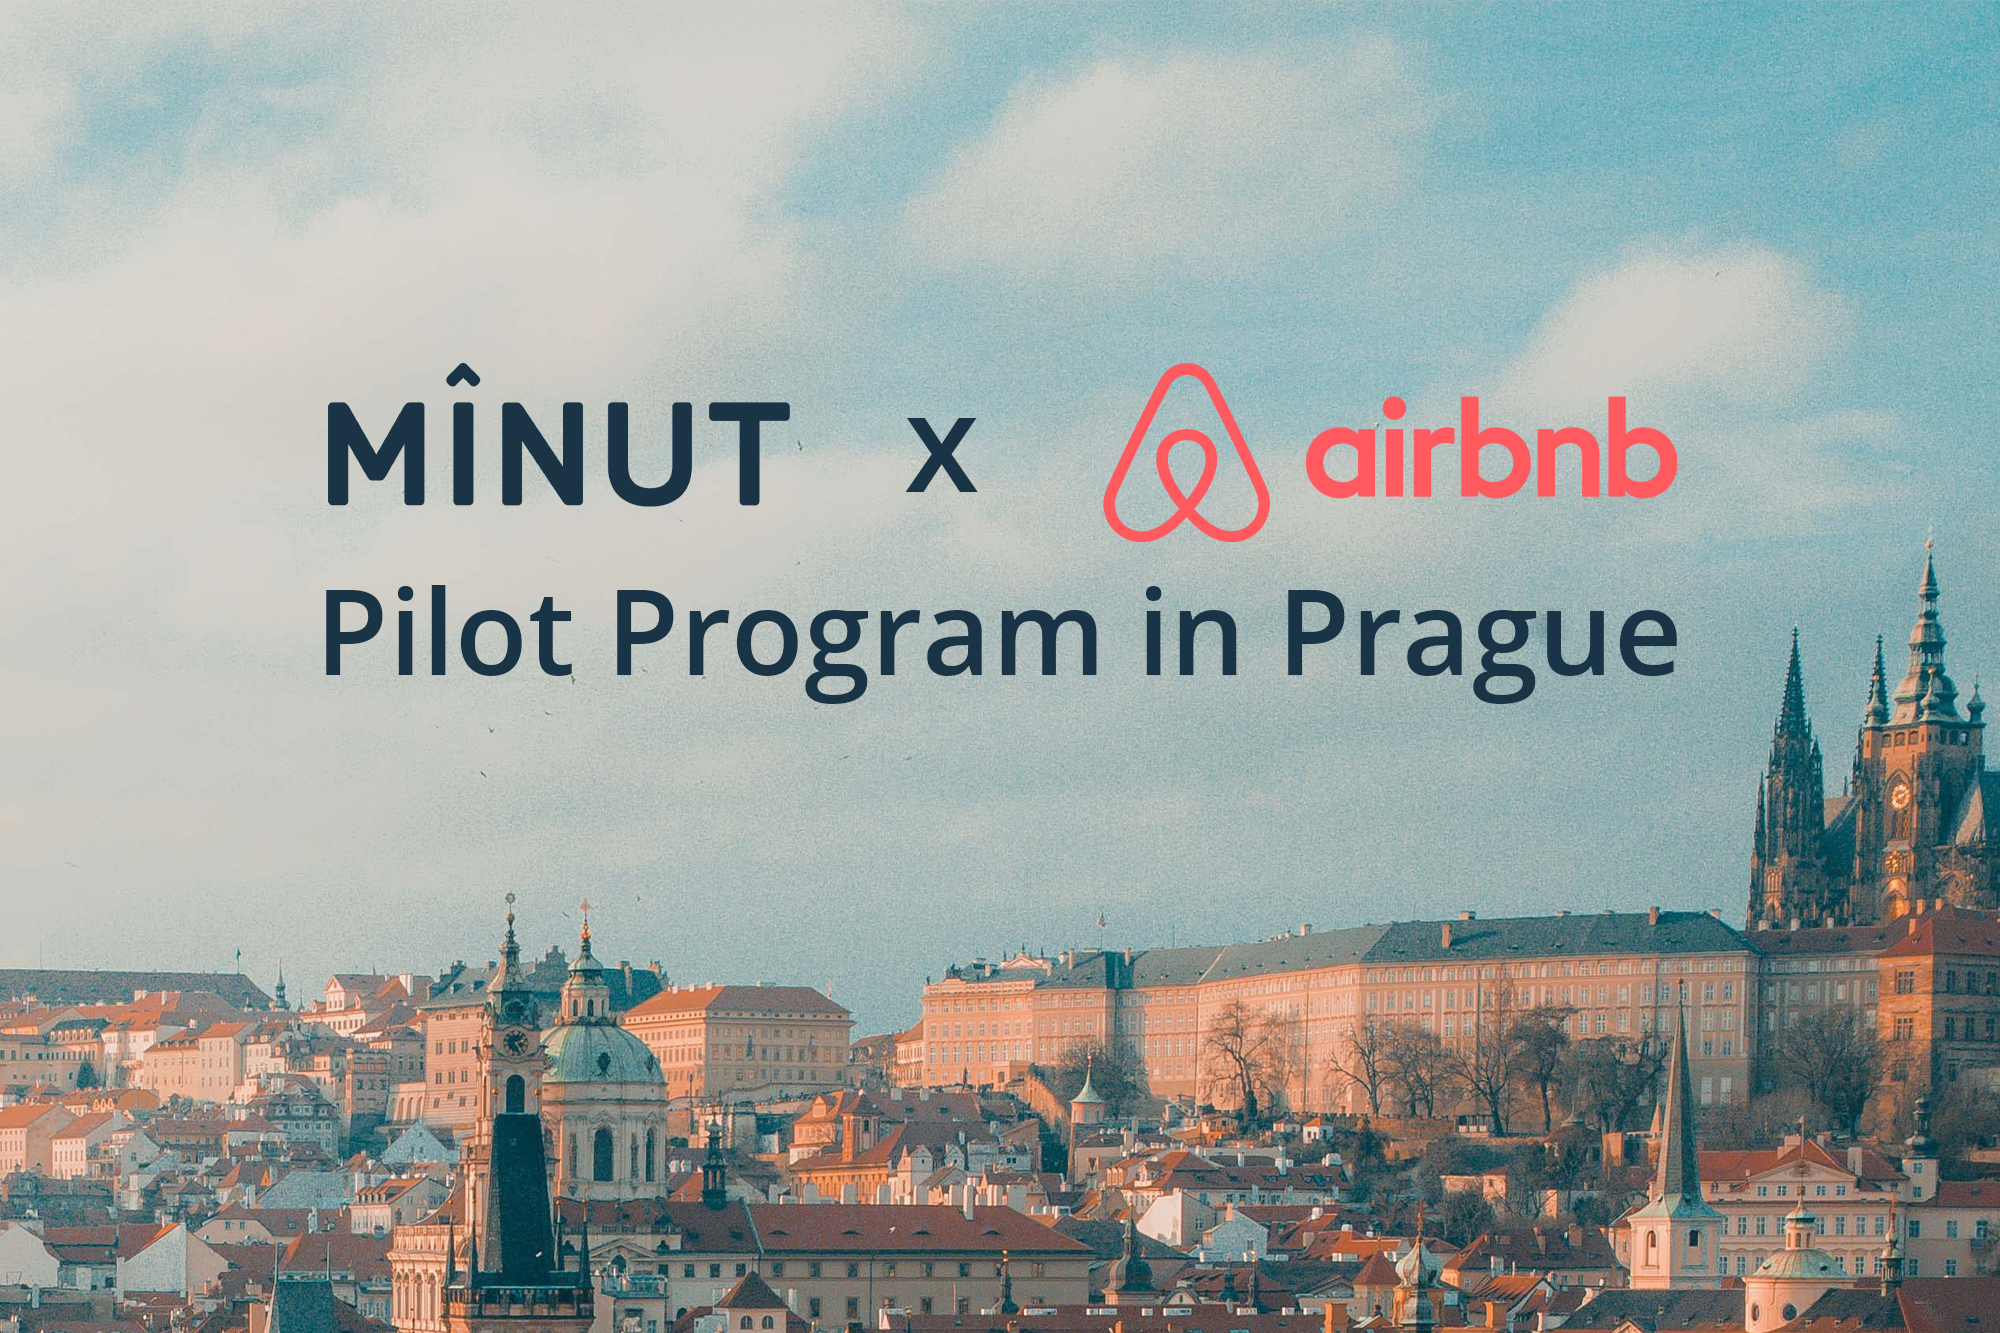 Minut and Airbnb logos over Prague landscape